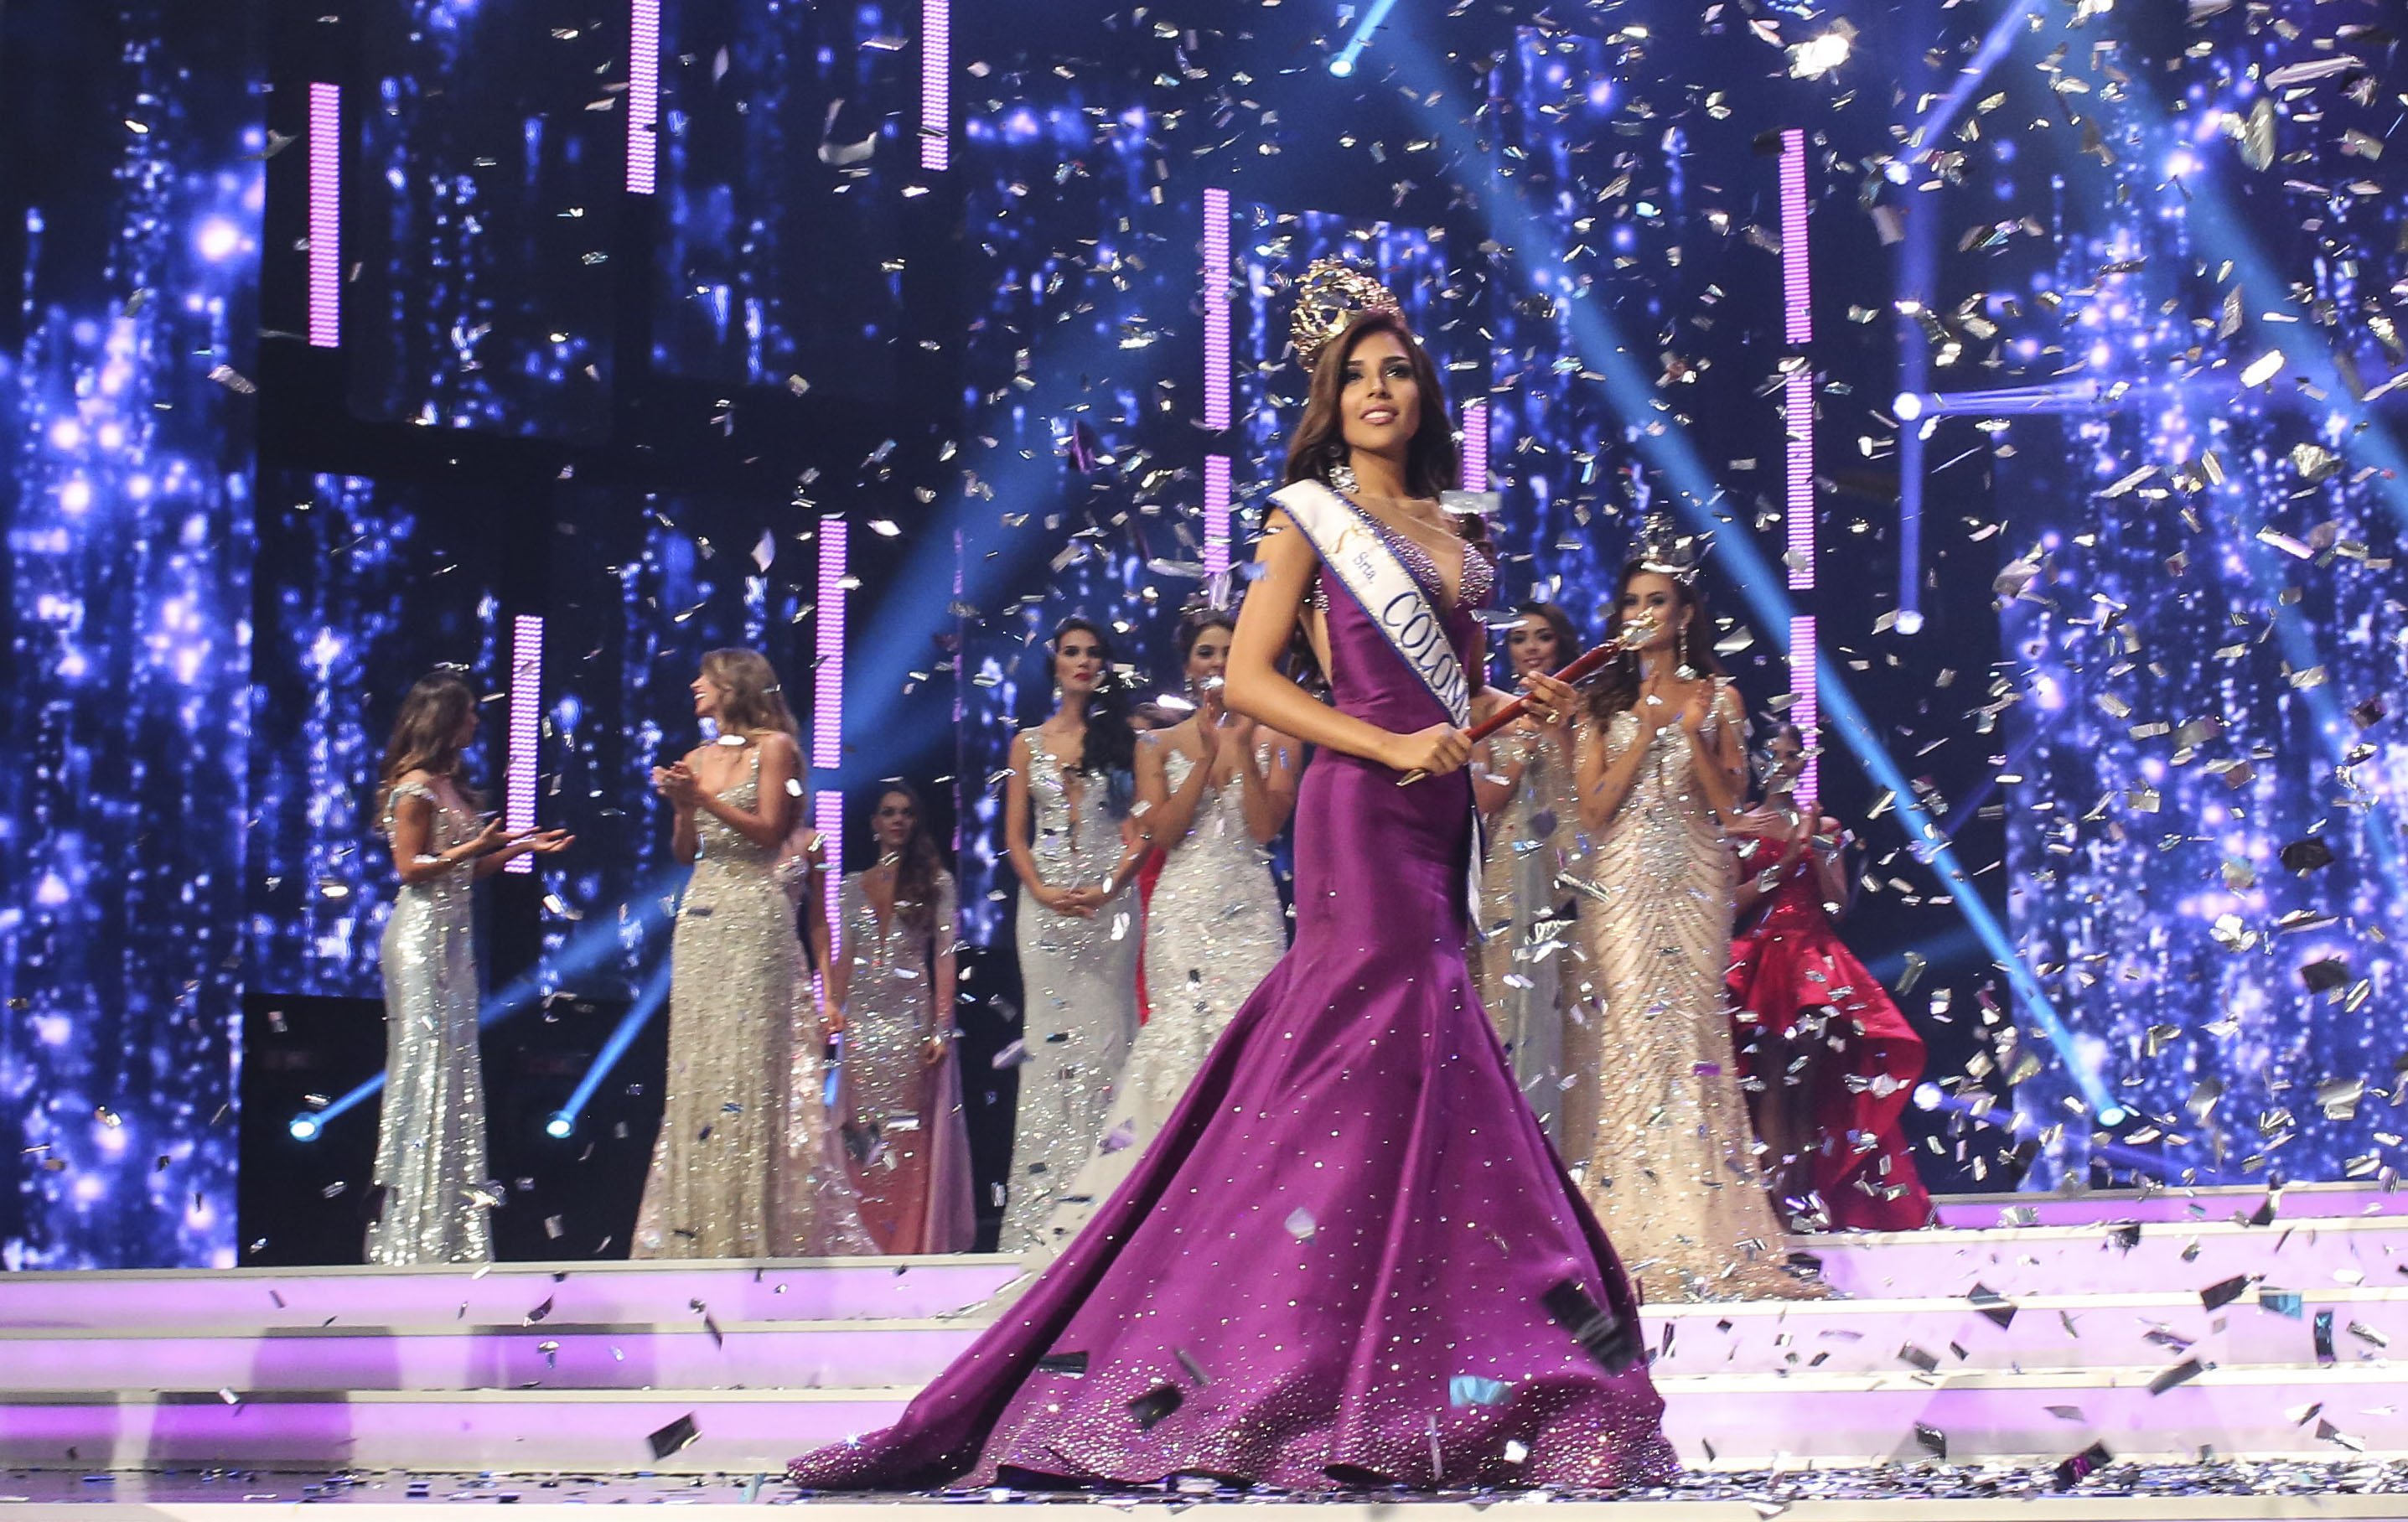 Laura Gonzales Ospina >> Laura Gonzalez Ospina crowned as Miss Colombia 2017 ...